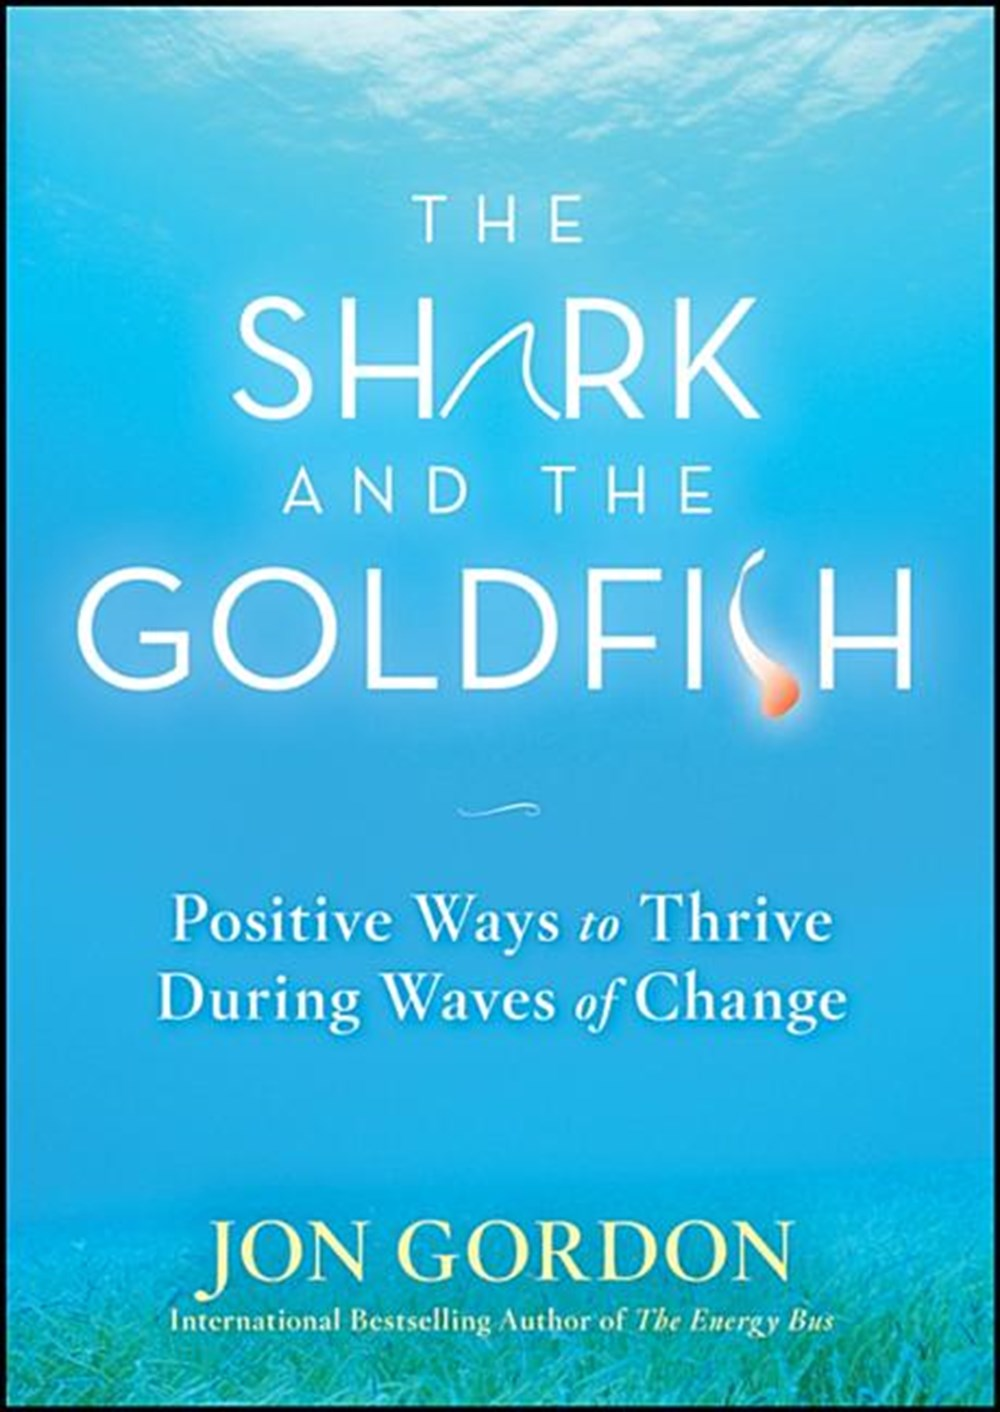 Shark and the Goldfish Positive Ways to Thrive During Waves of Change